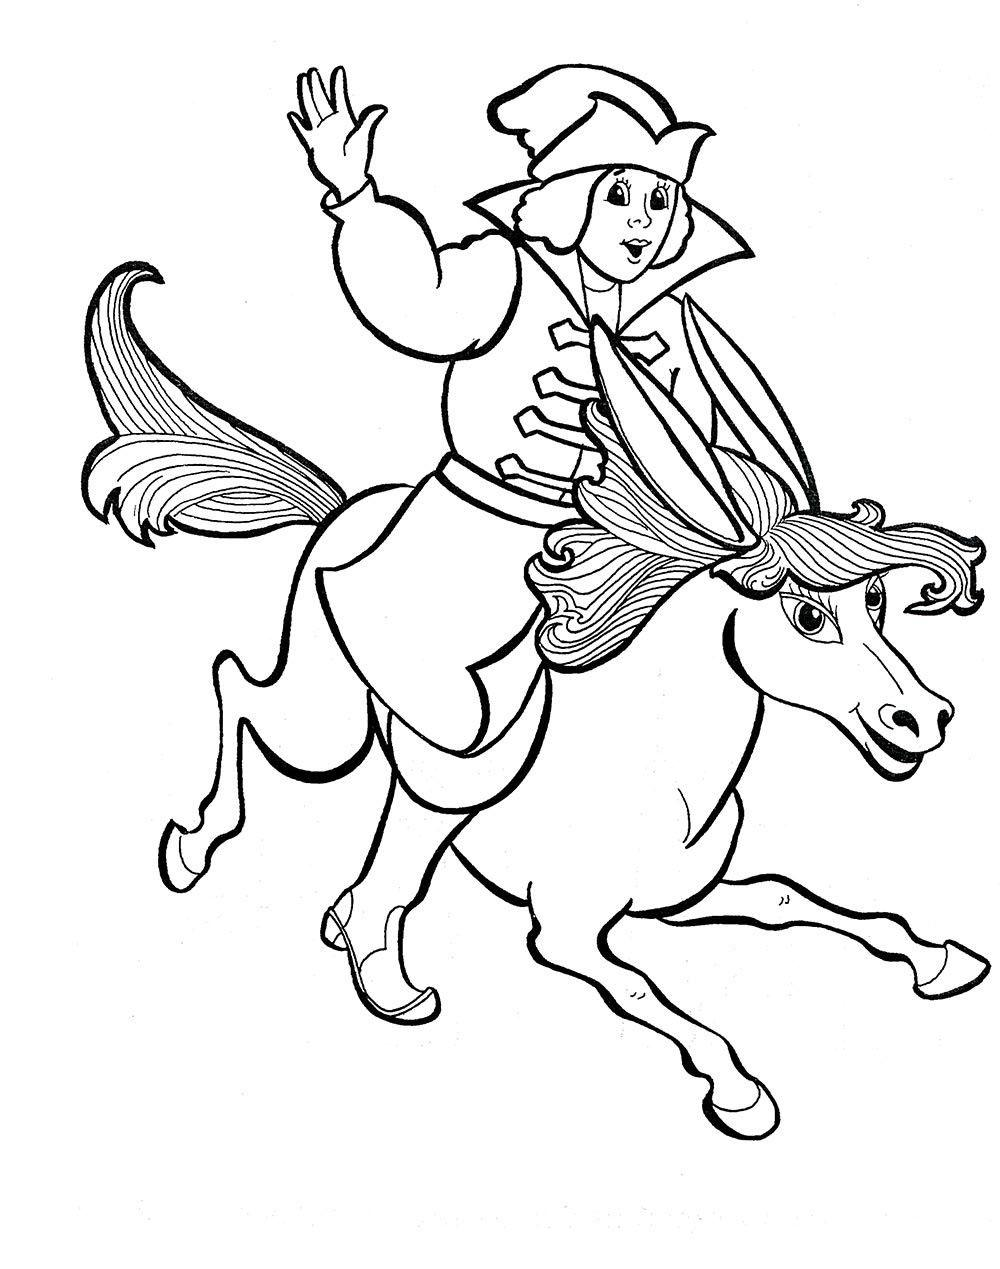 Coloring coloring pages the fairy tale The Little Humpbacked Horse horse humpback and Ivan, coloring pages on the story